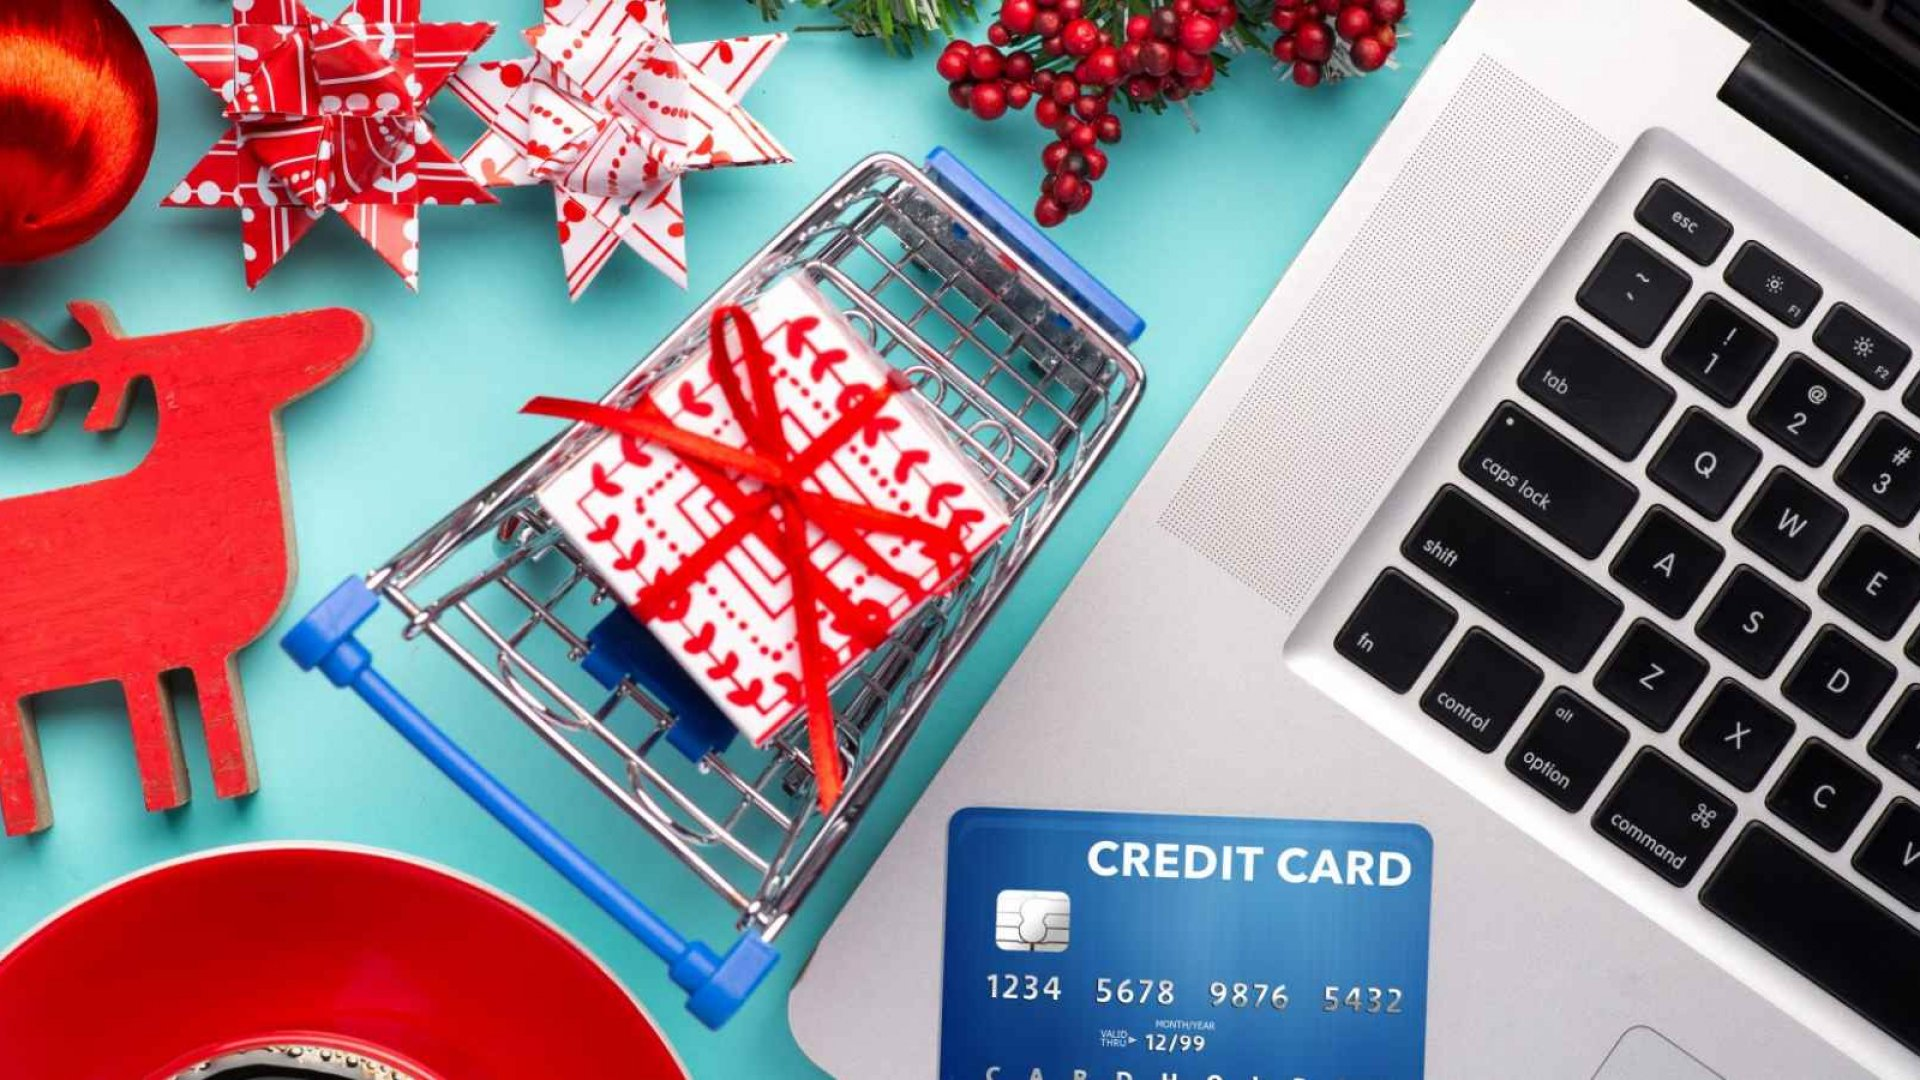 New comScore Data Reveals Busiest Online Shopping Days in 2016 Holiday Season